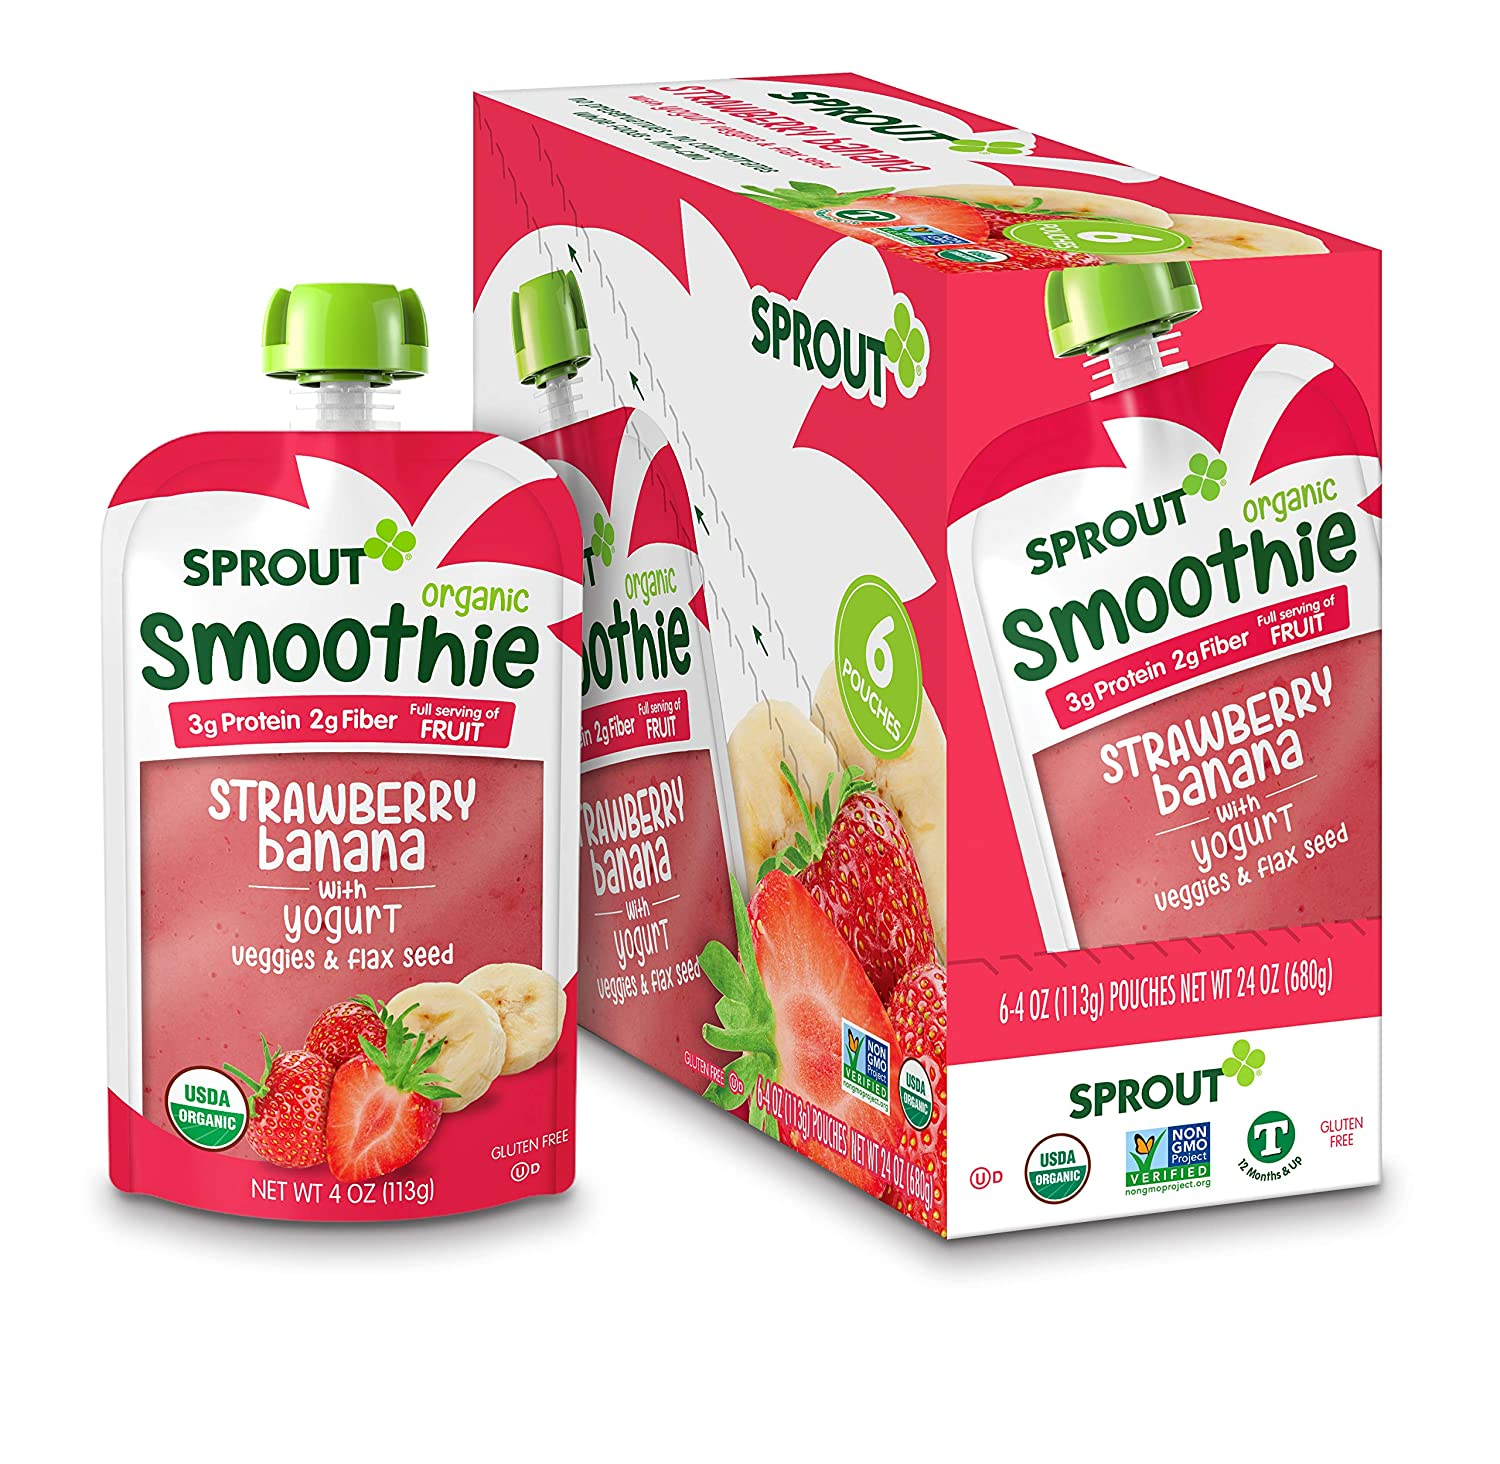 Sprout Organic Baby Food, Stage 4 Toddler Smoothie Pouches, Strawberry Banana & Yogurt, 4 Oz Purees (Pack of 12)